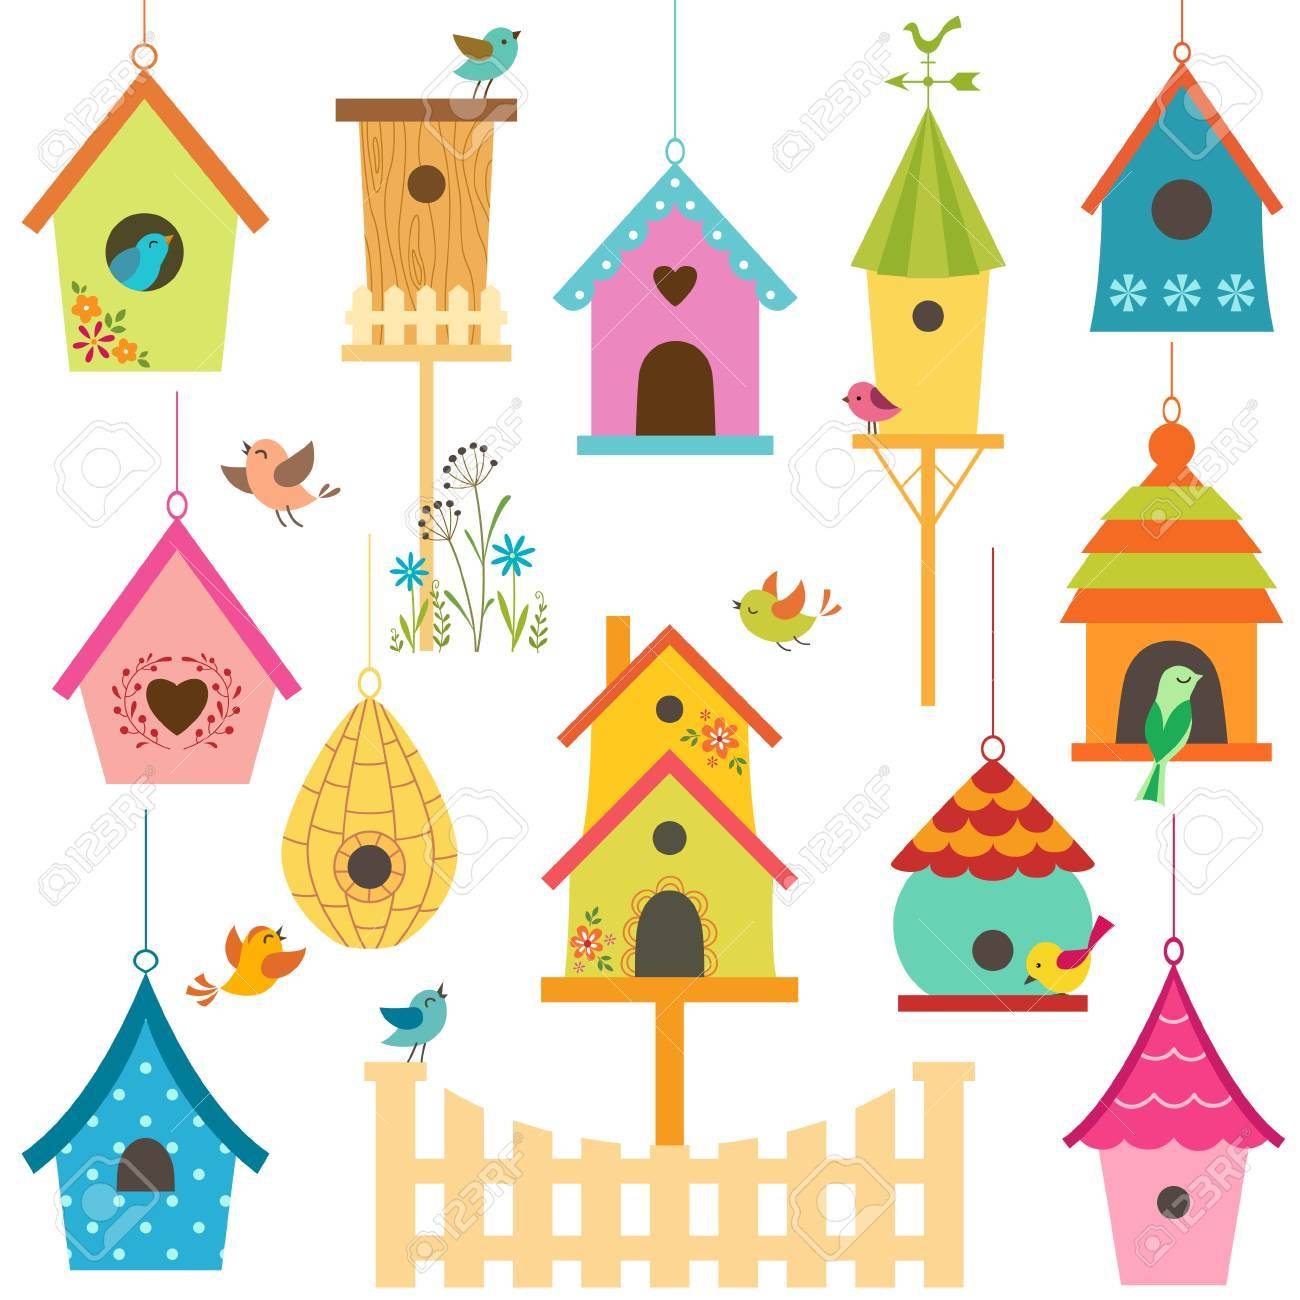 Set of colorful bird houses - 27715114